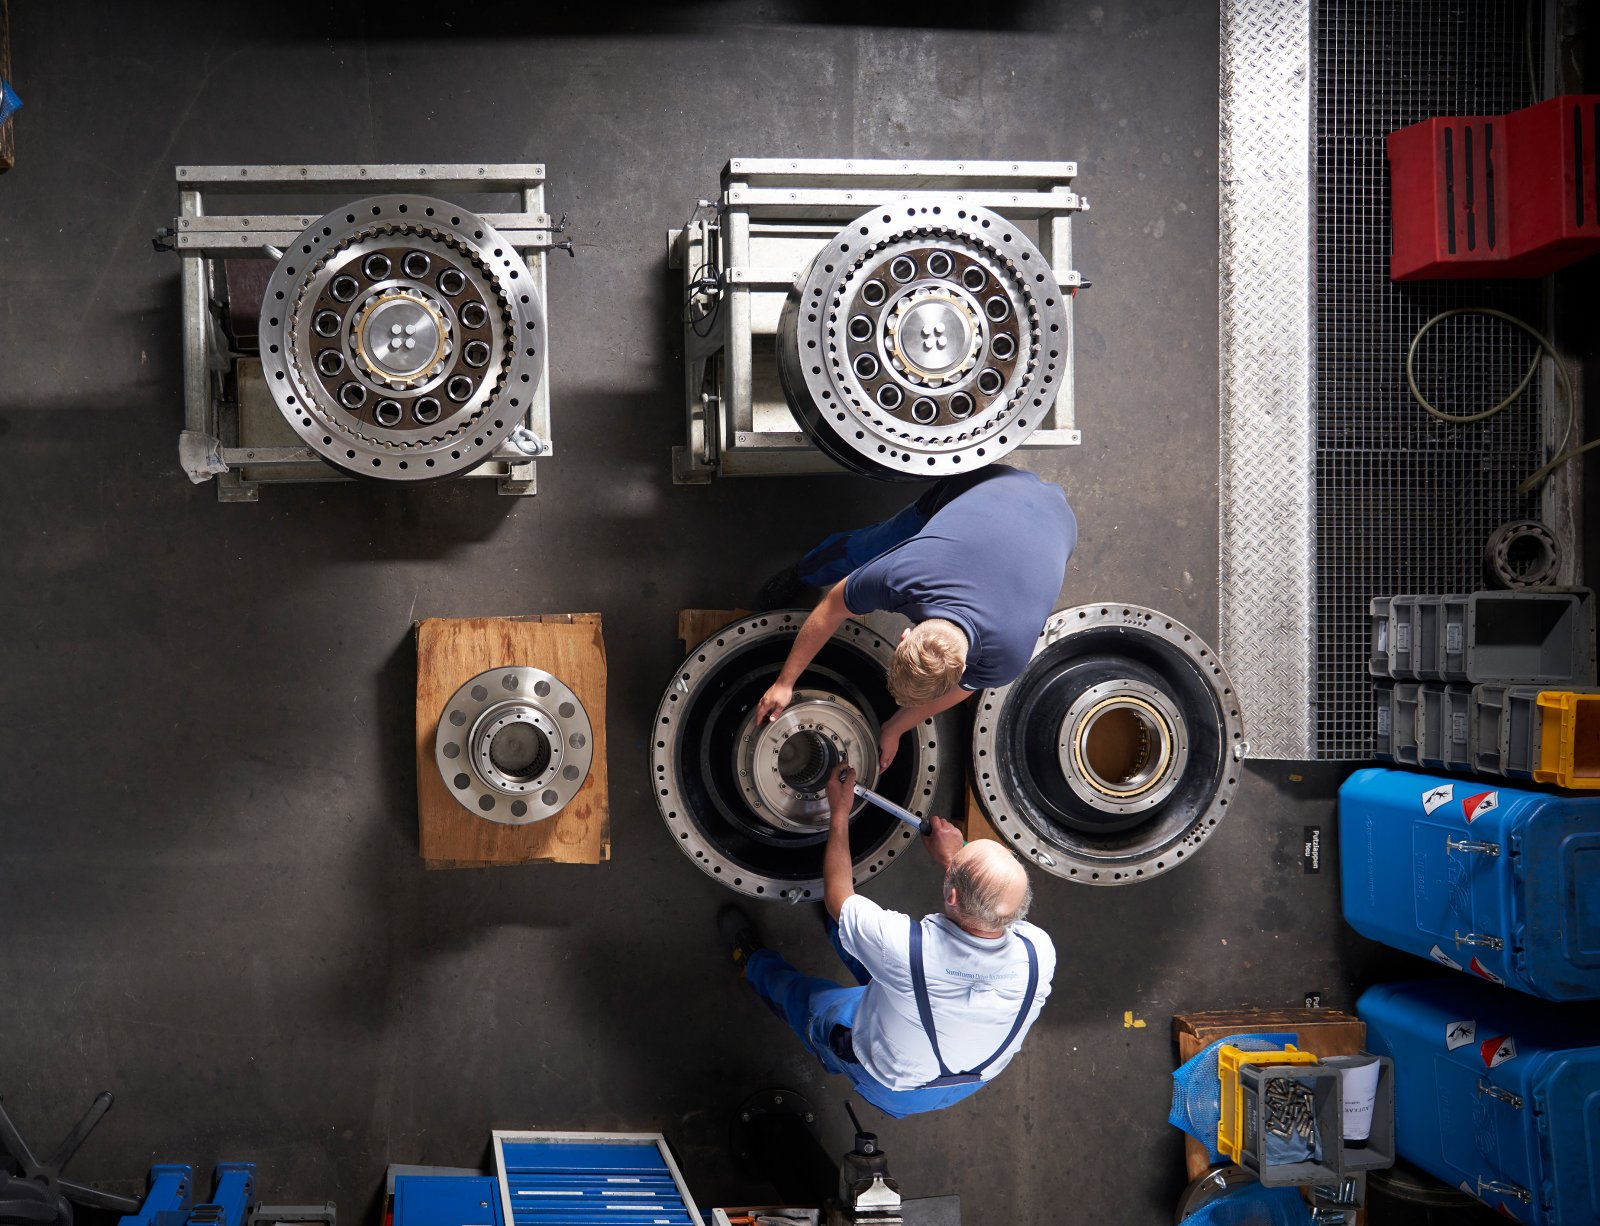 Bird's eye view of technicians and gearboxes